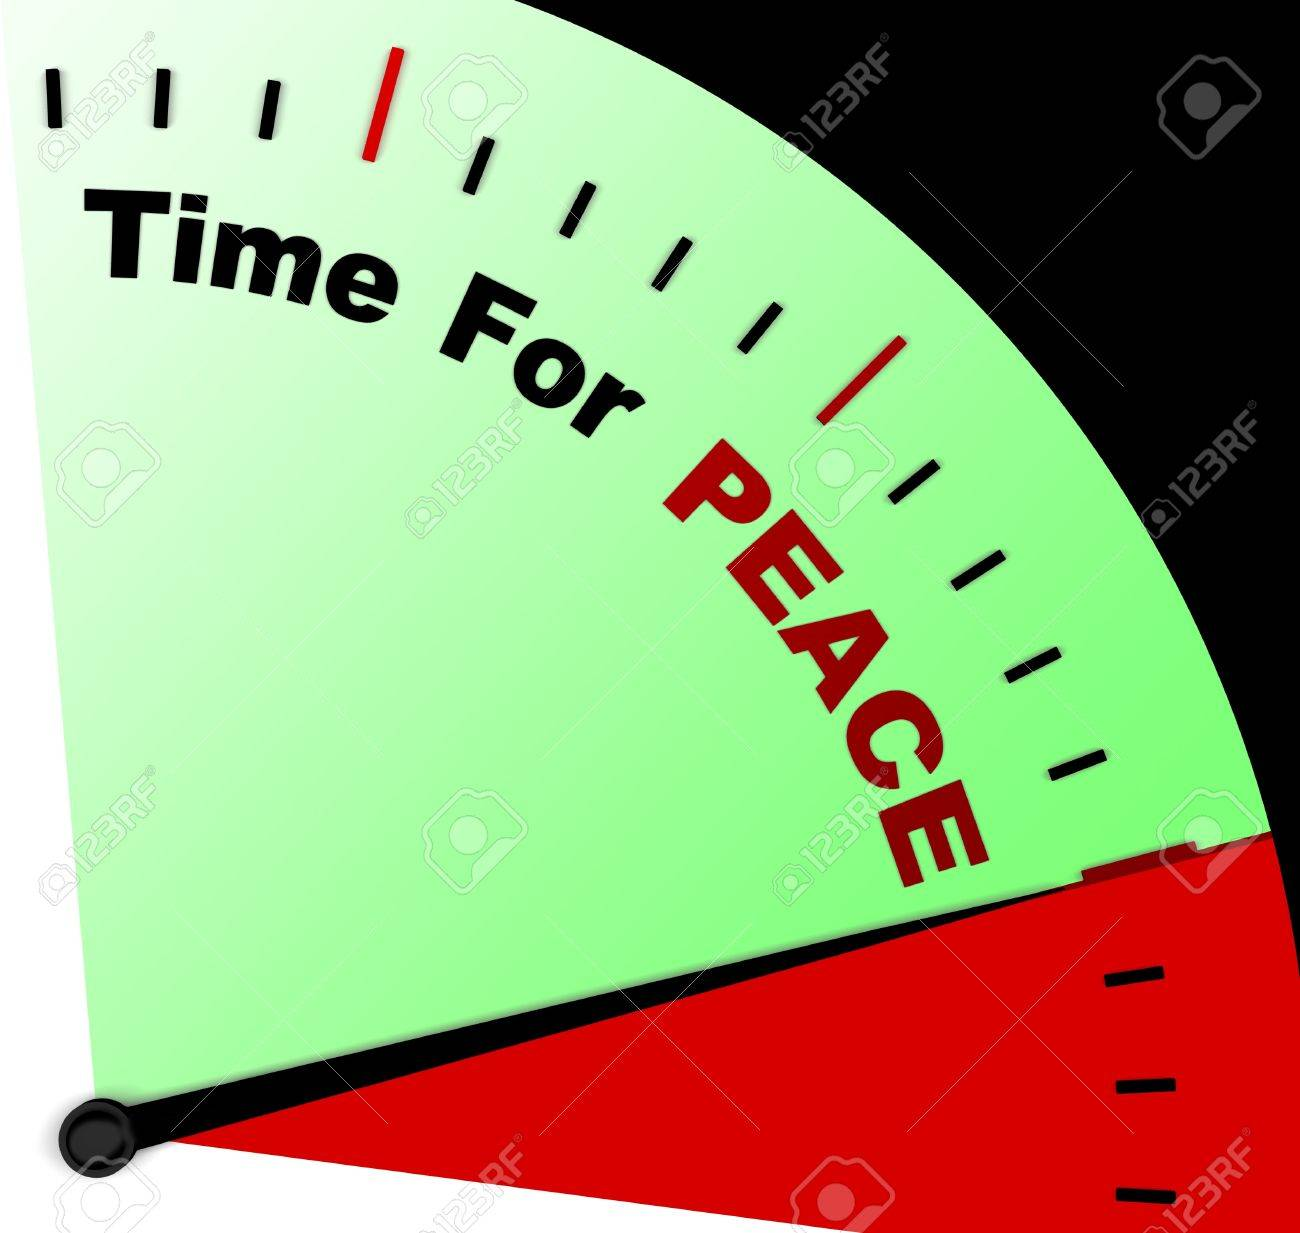 Time For Peace Message Meaning Anti War And Peaceful Stock Photo - 18039265